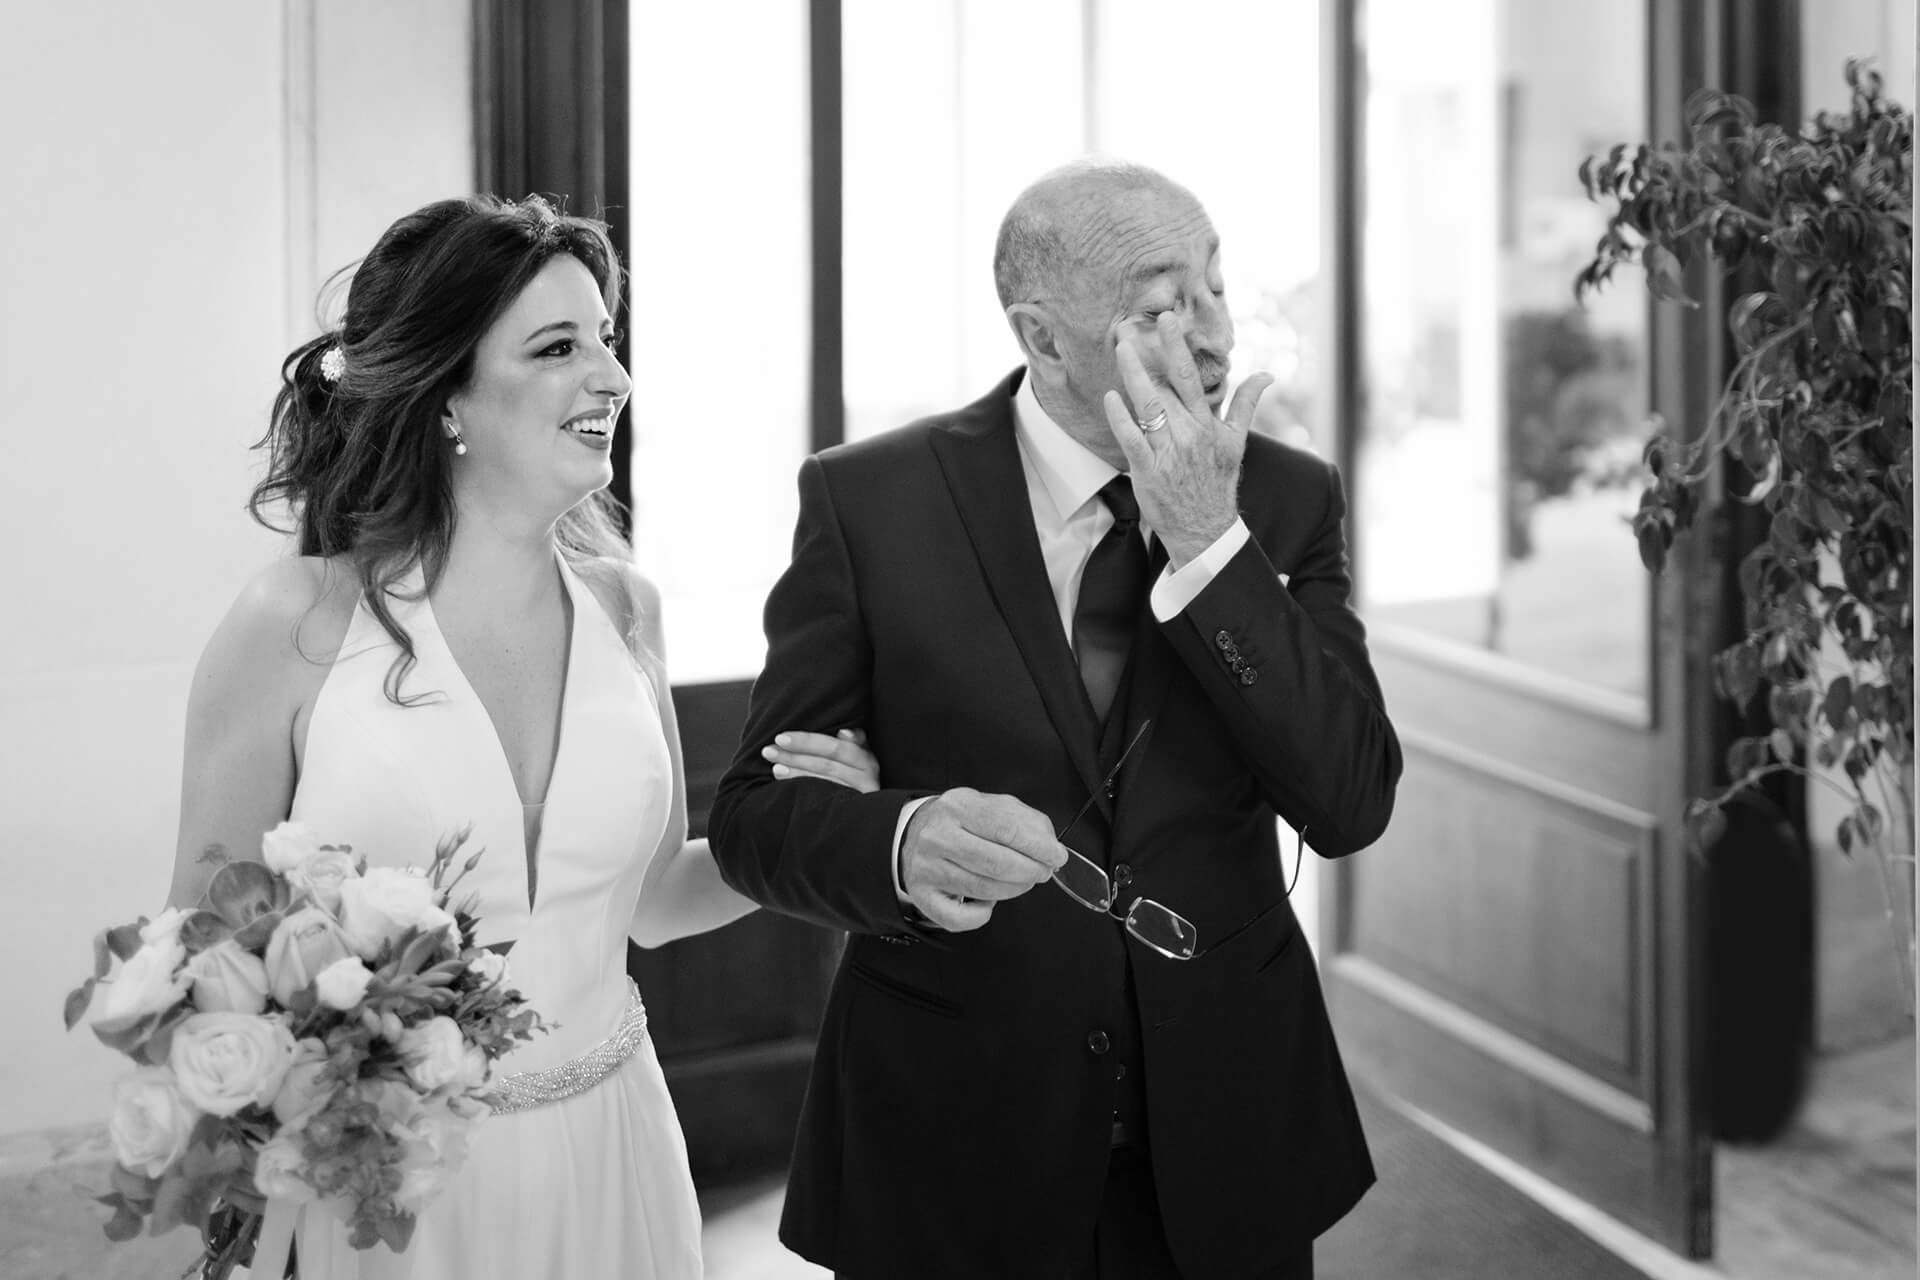 Italy Destination Wedding Photos in BW |  the emotion is present